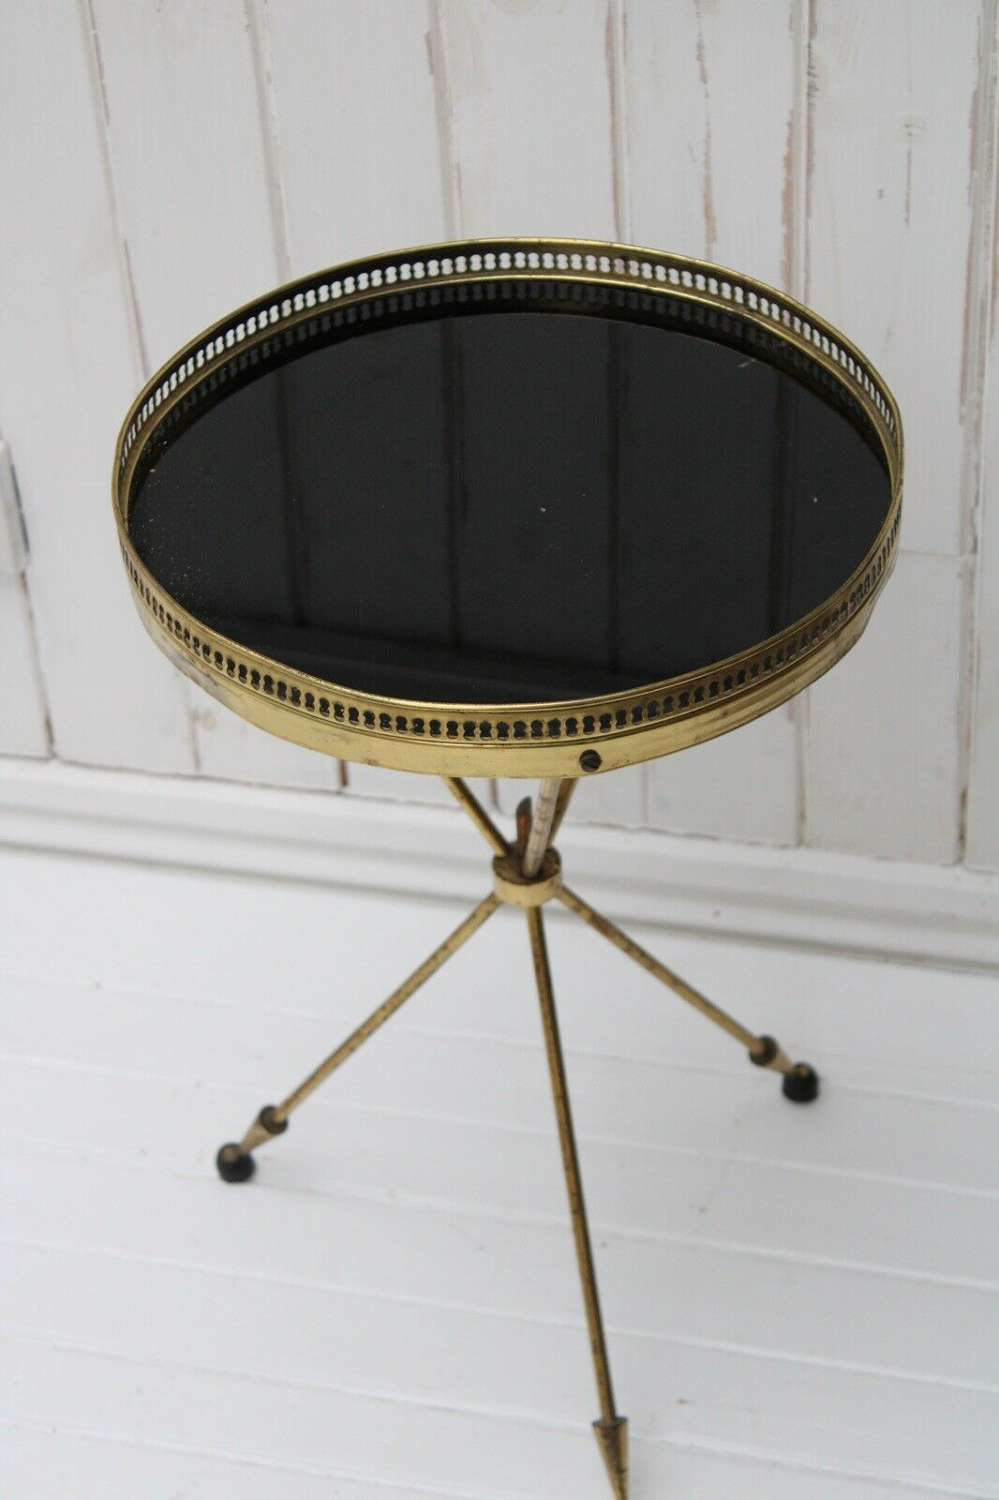 Antique brass and marble table